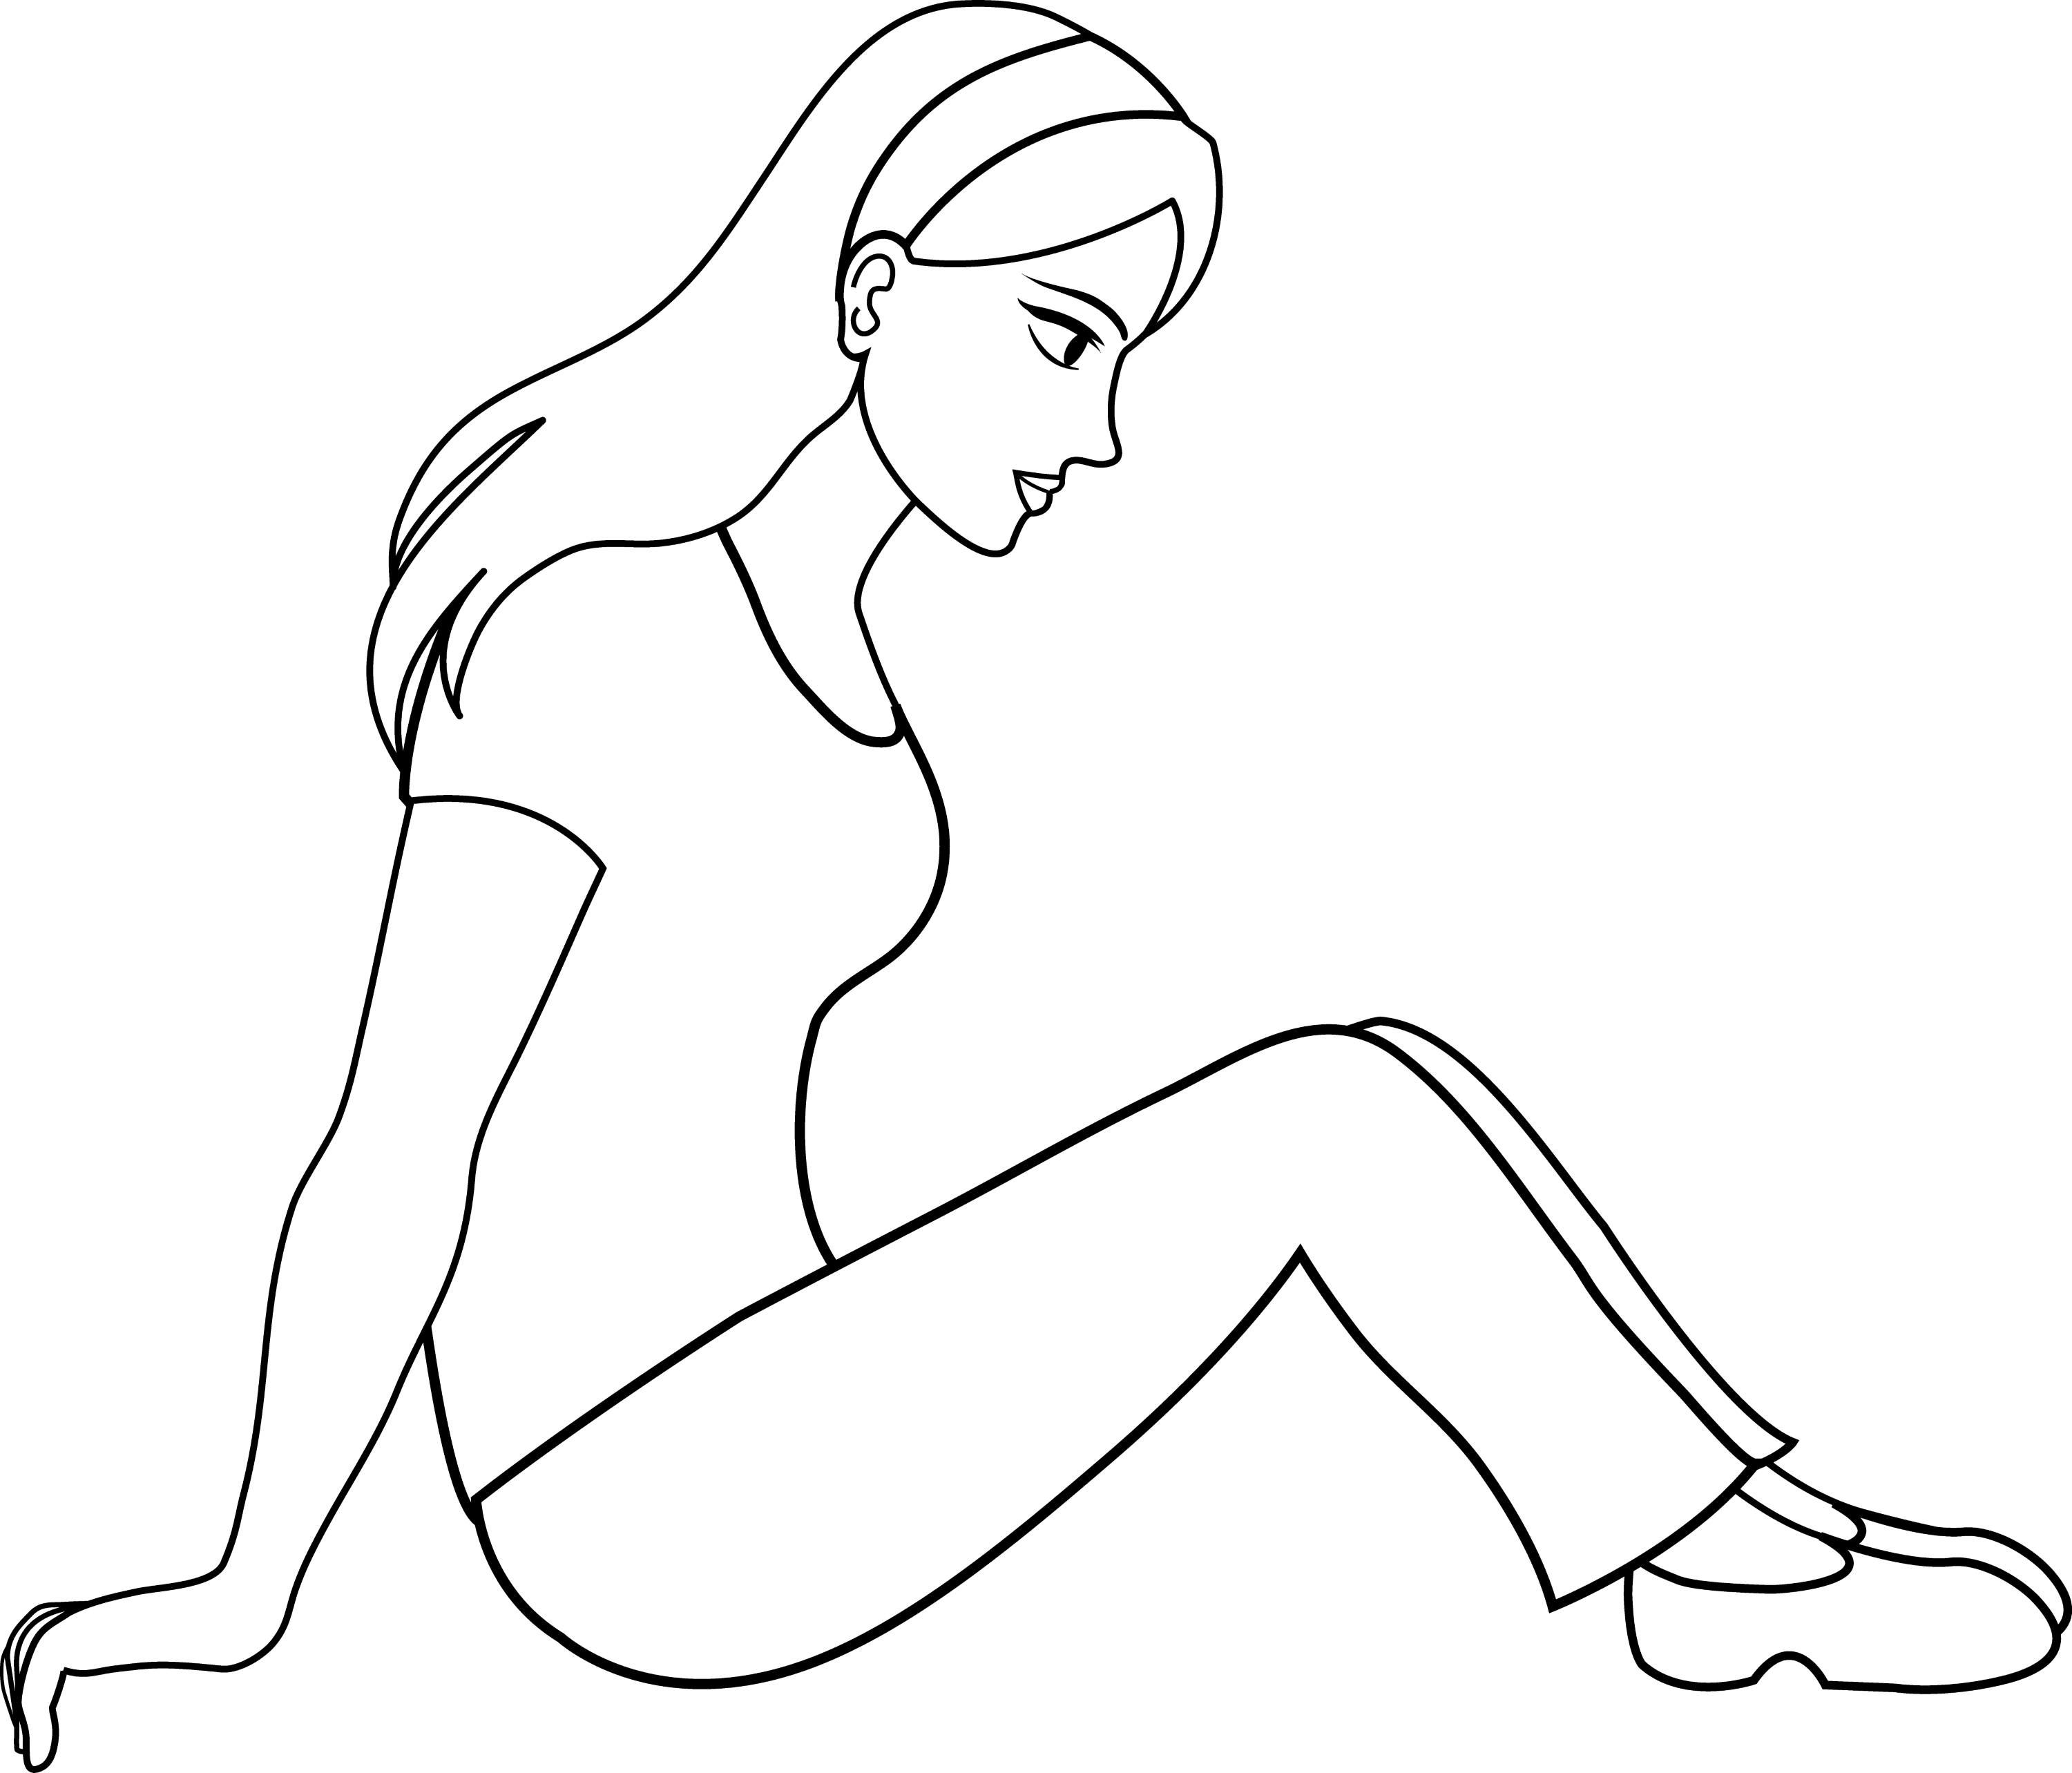 Colorable Line Art Of Sitting Woman